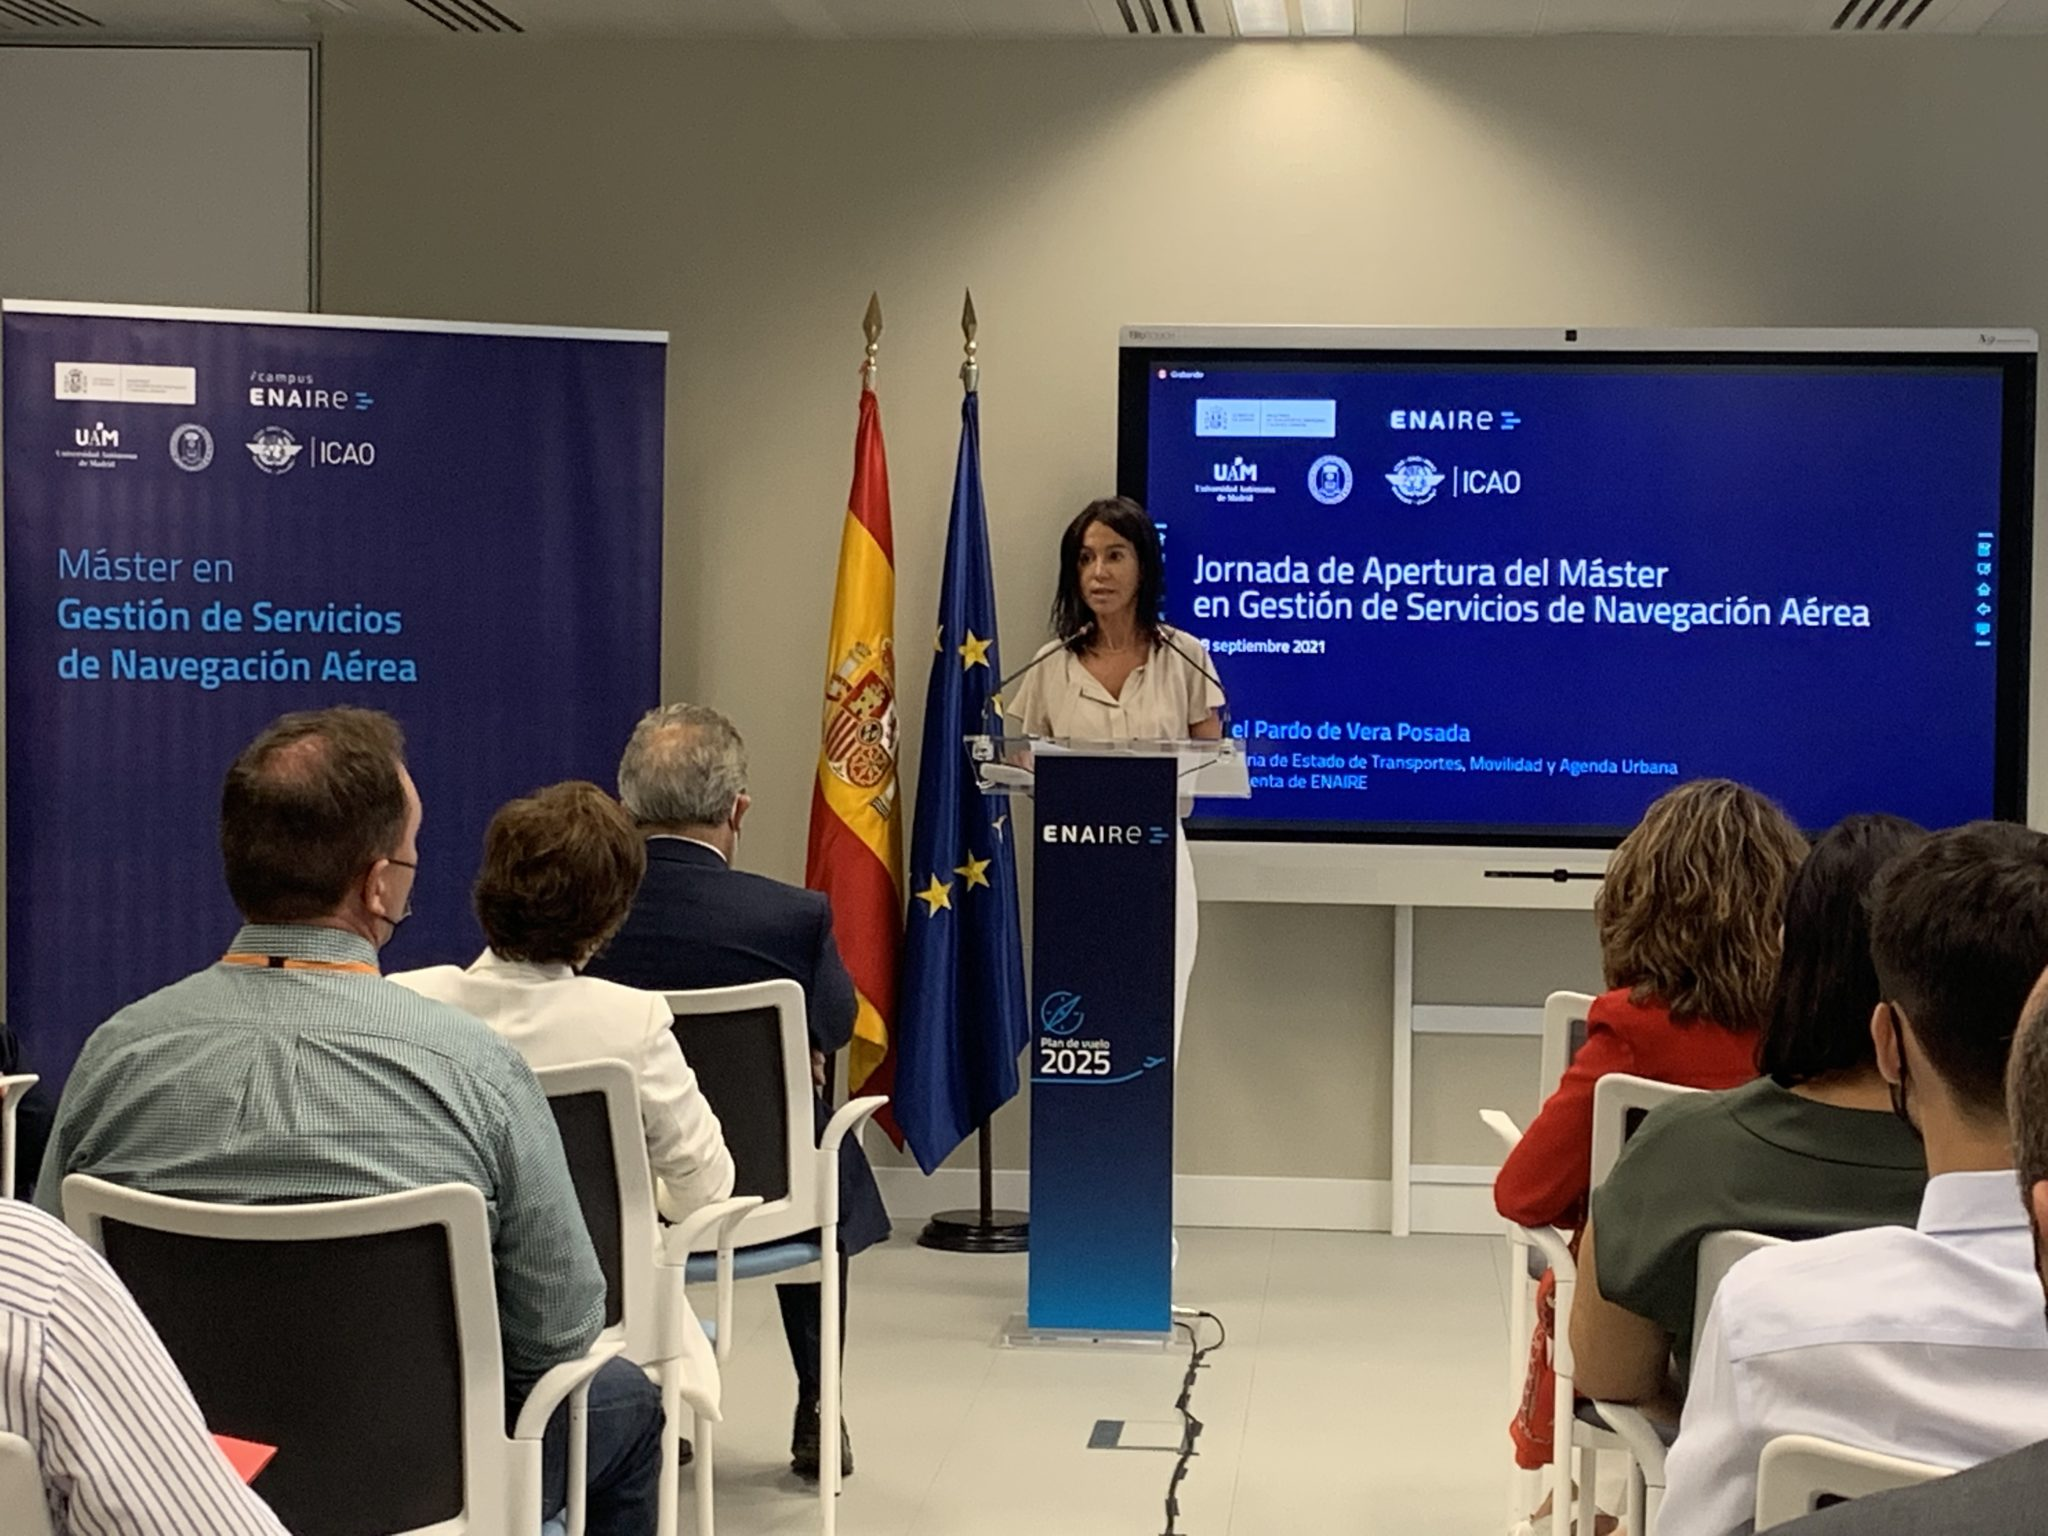 Isabel-Pardo-de-Vera-Secretary-of-State-for-Transport-Mobility-and-Urban-Agenda-at-the-opening-of-the-Master-2048x1536